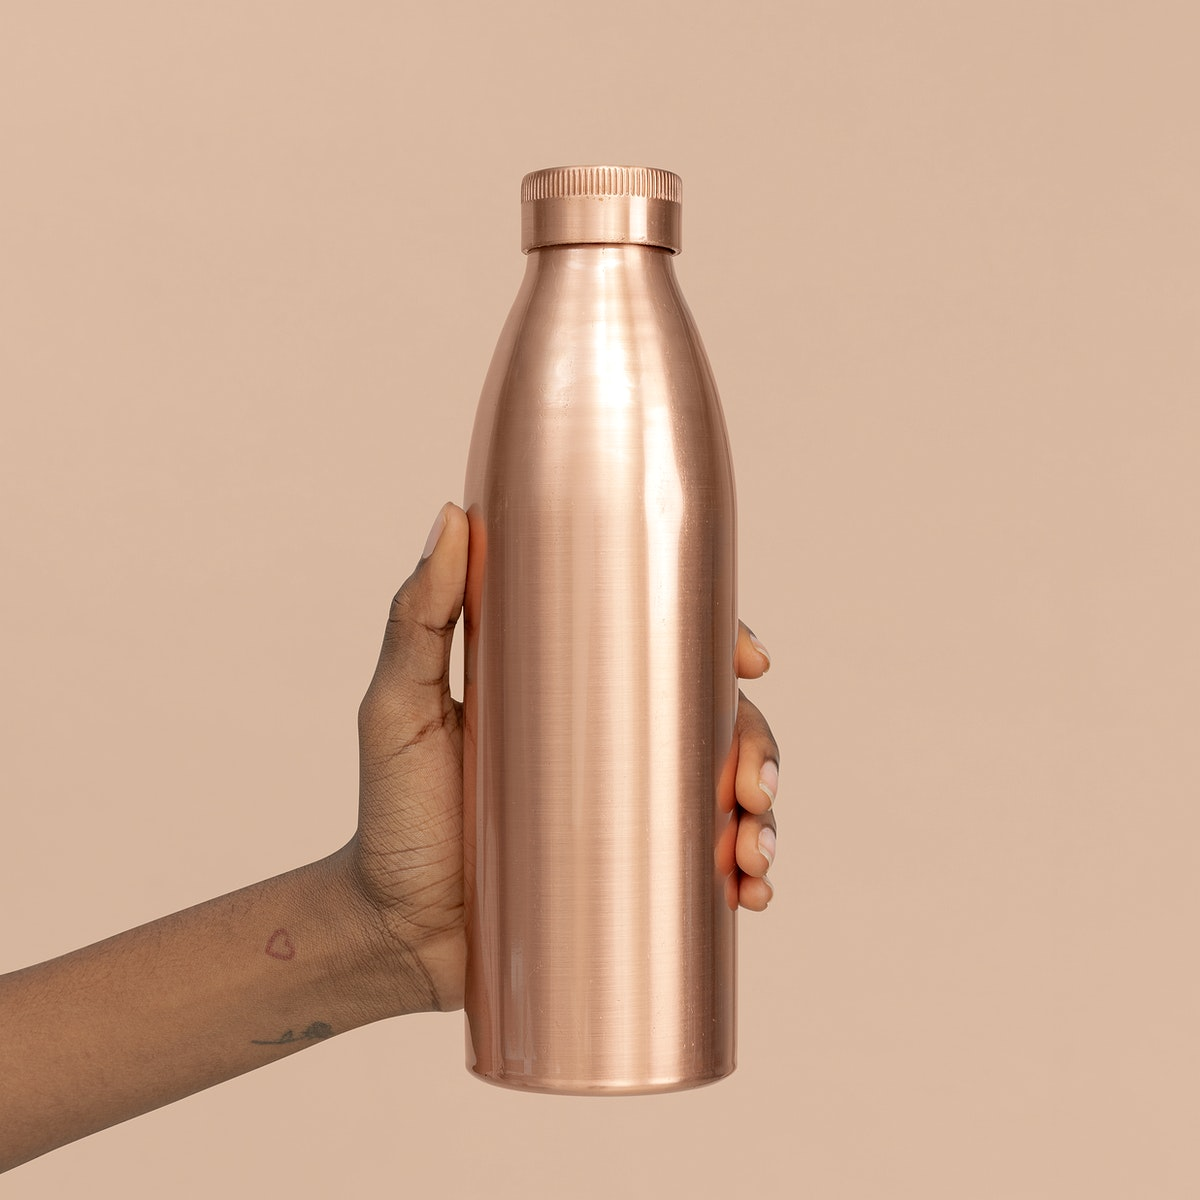 Hand holding a copper stainless steel bottle mockup